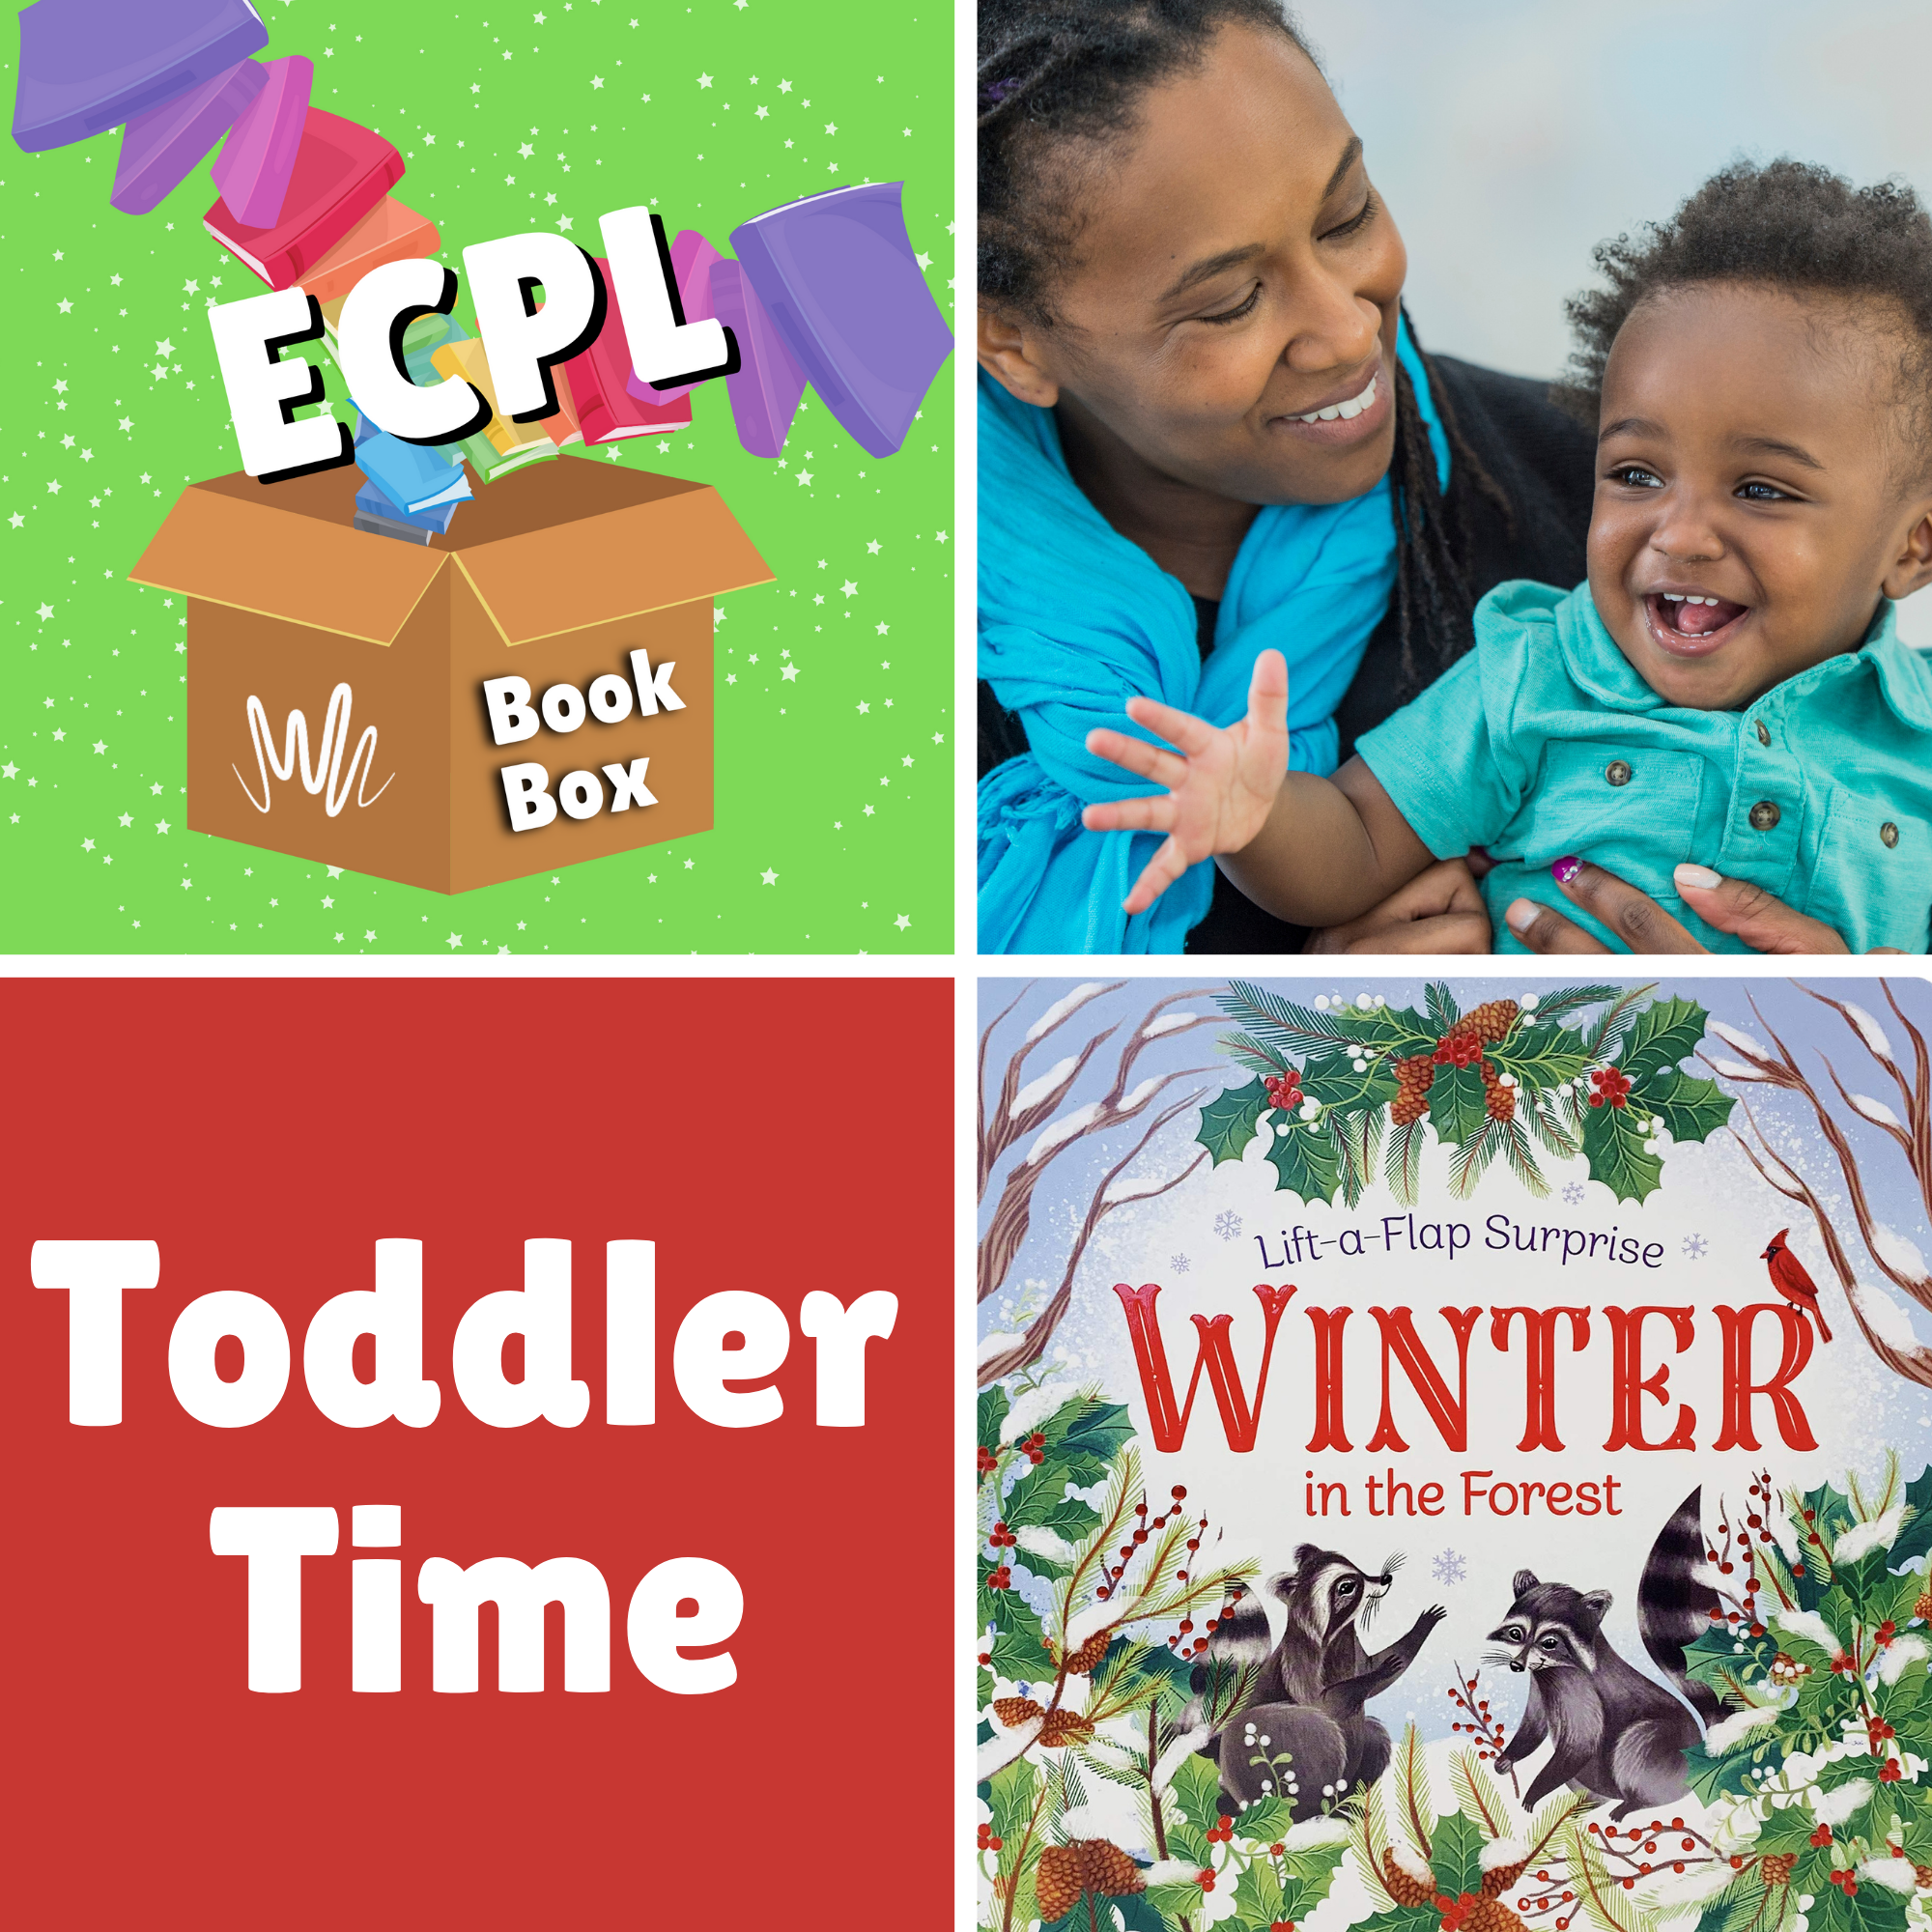 Toddler Time Book Box - Winter in the Forest